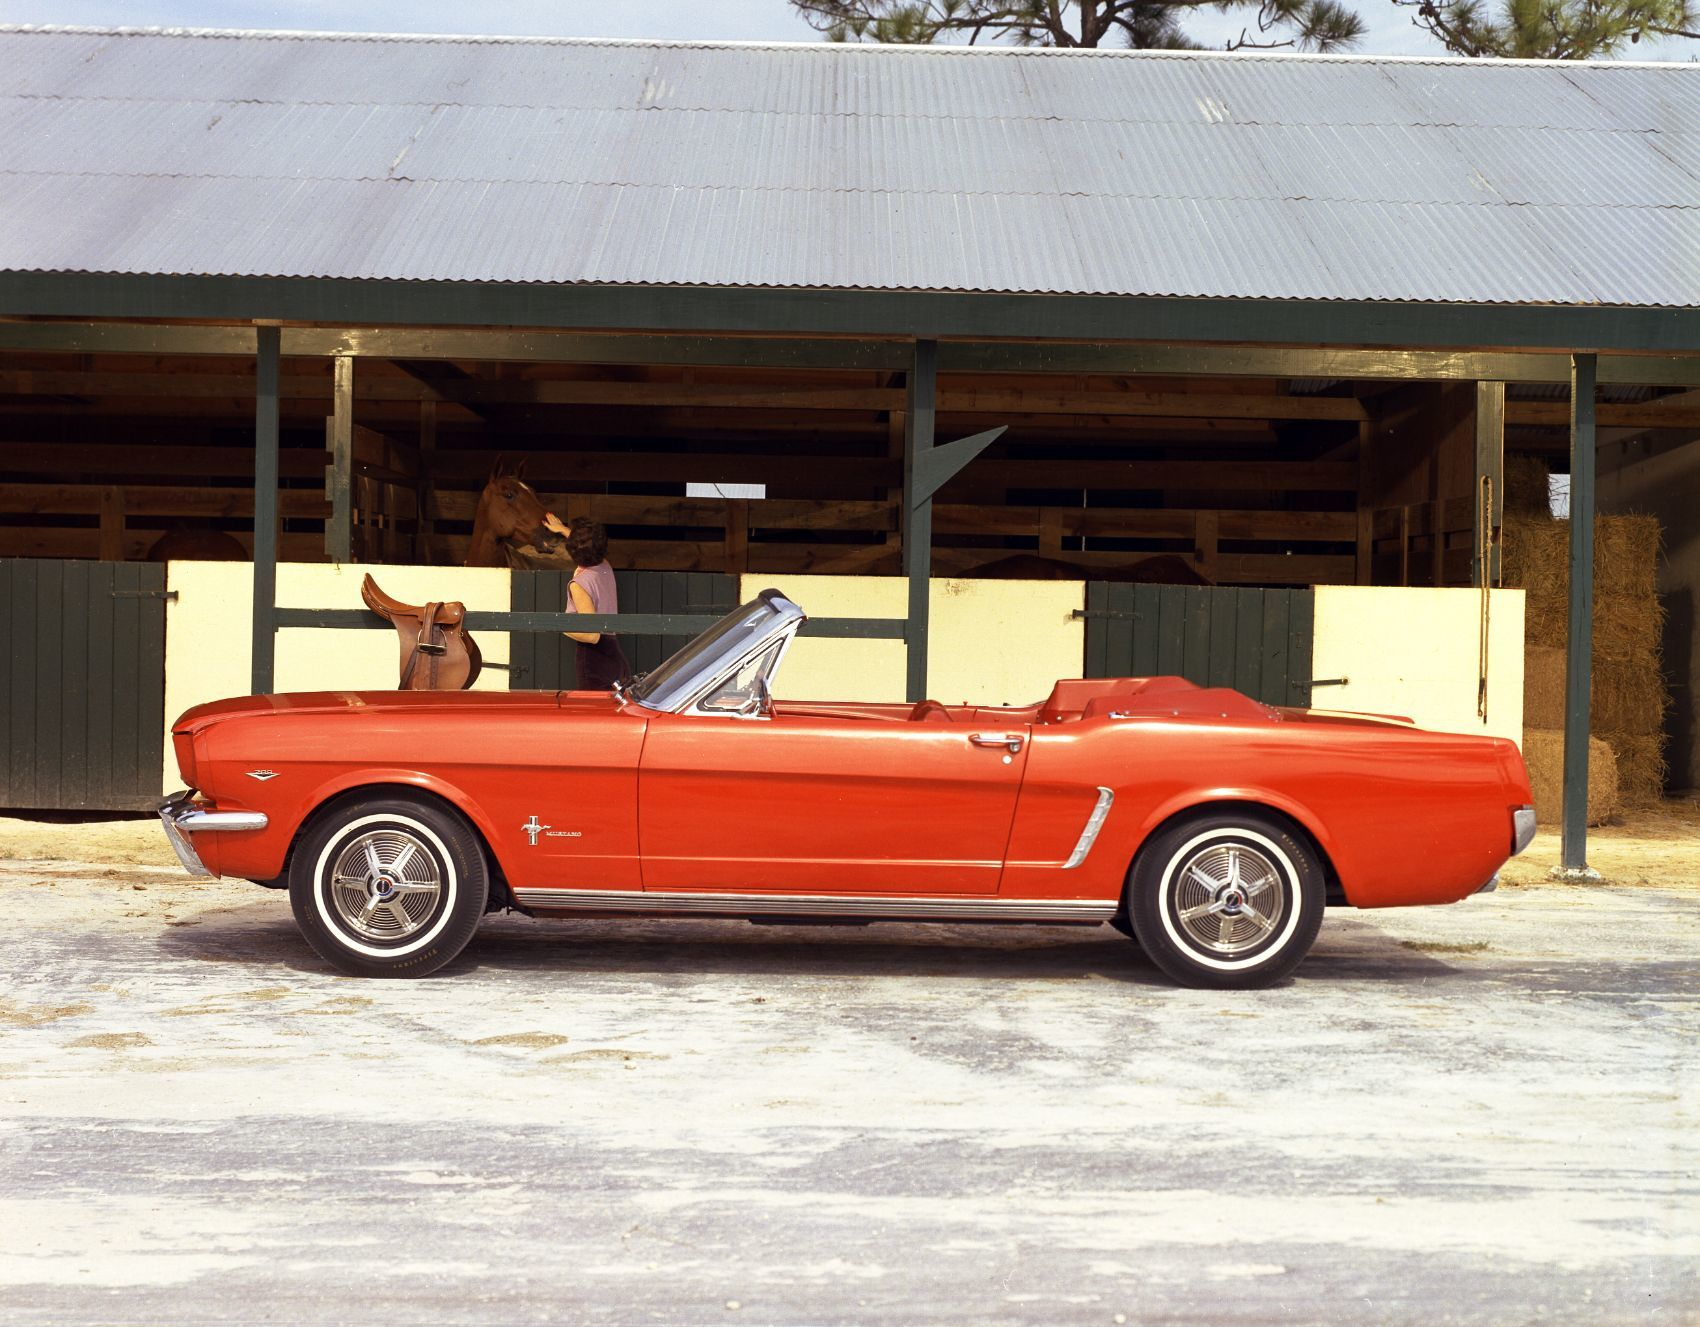 Enjoy This Gallery of Orange Ford Mustangs Just Because